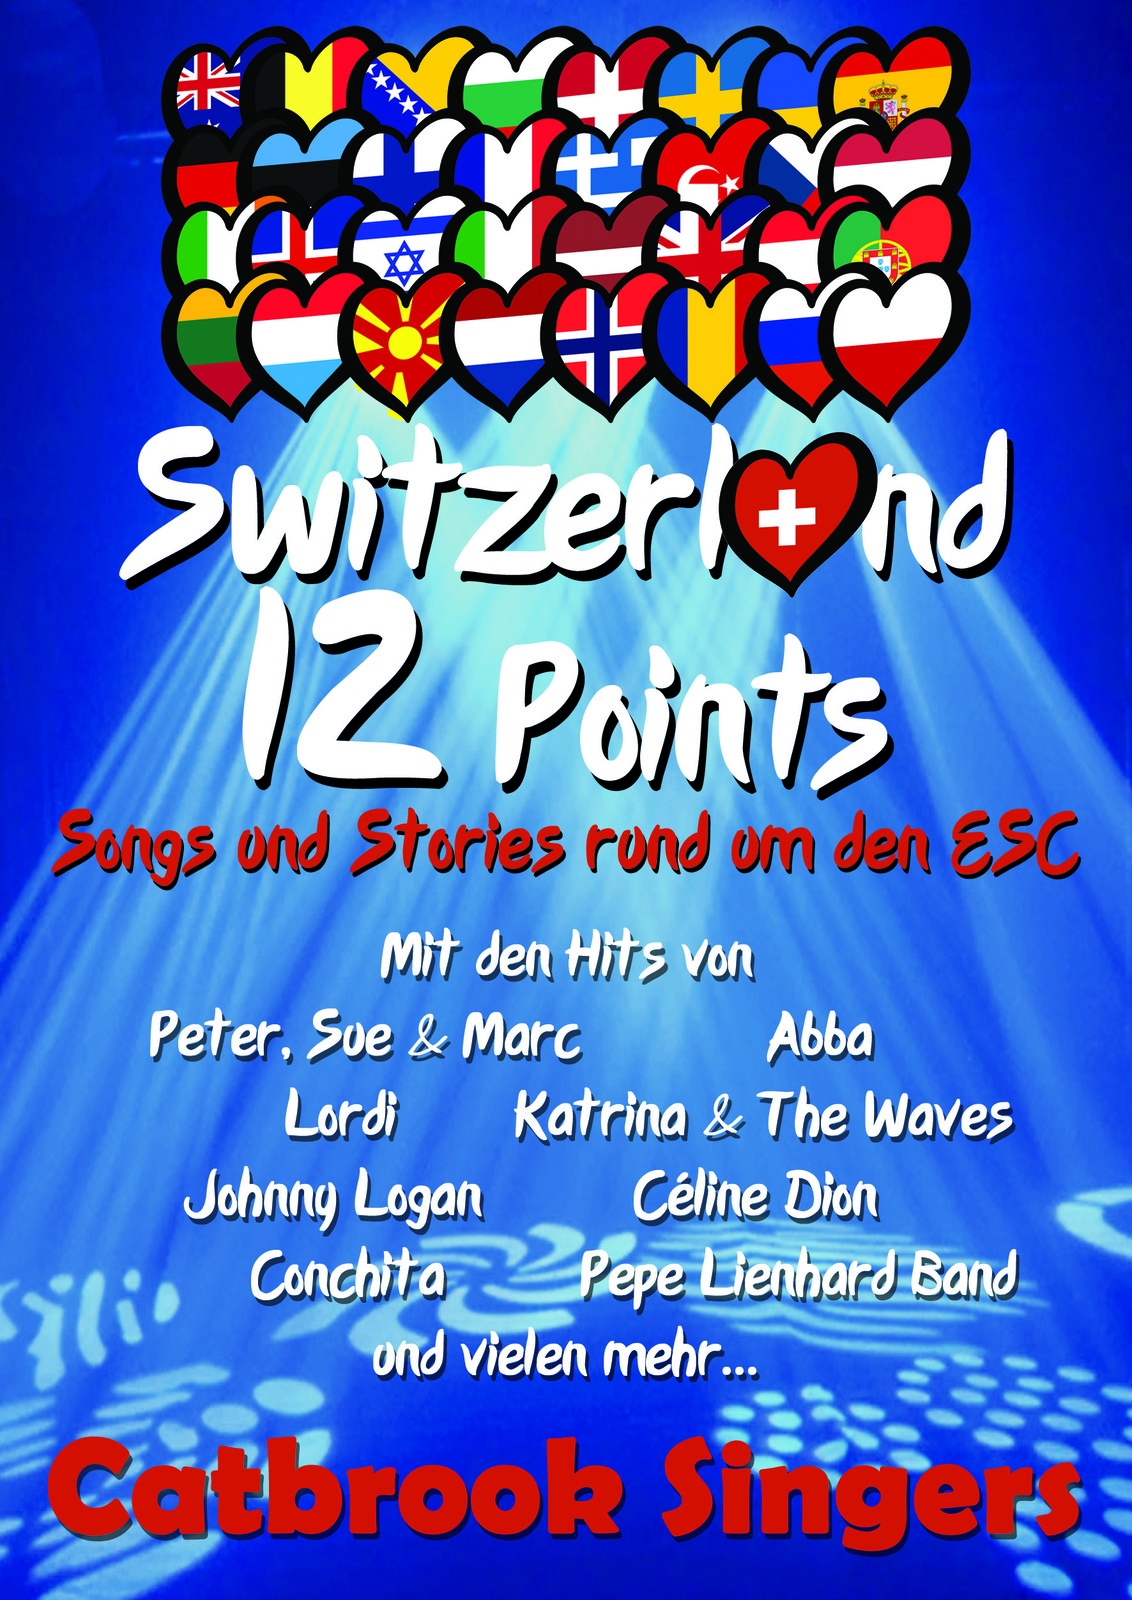 Switzerland 12 points l